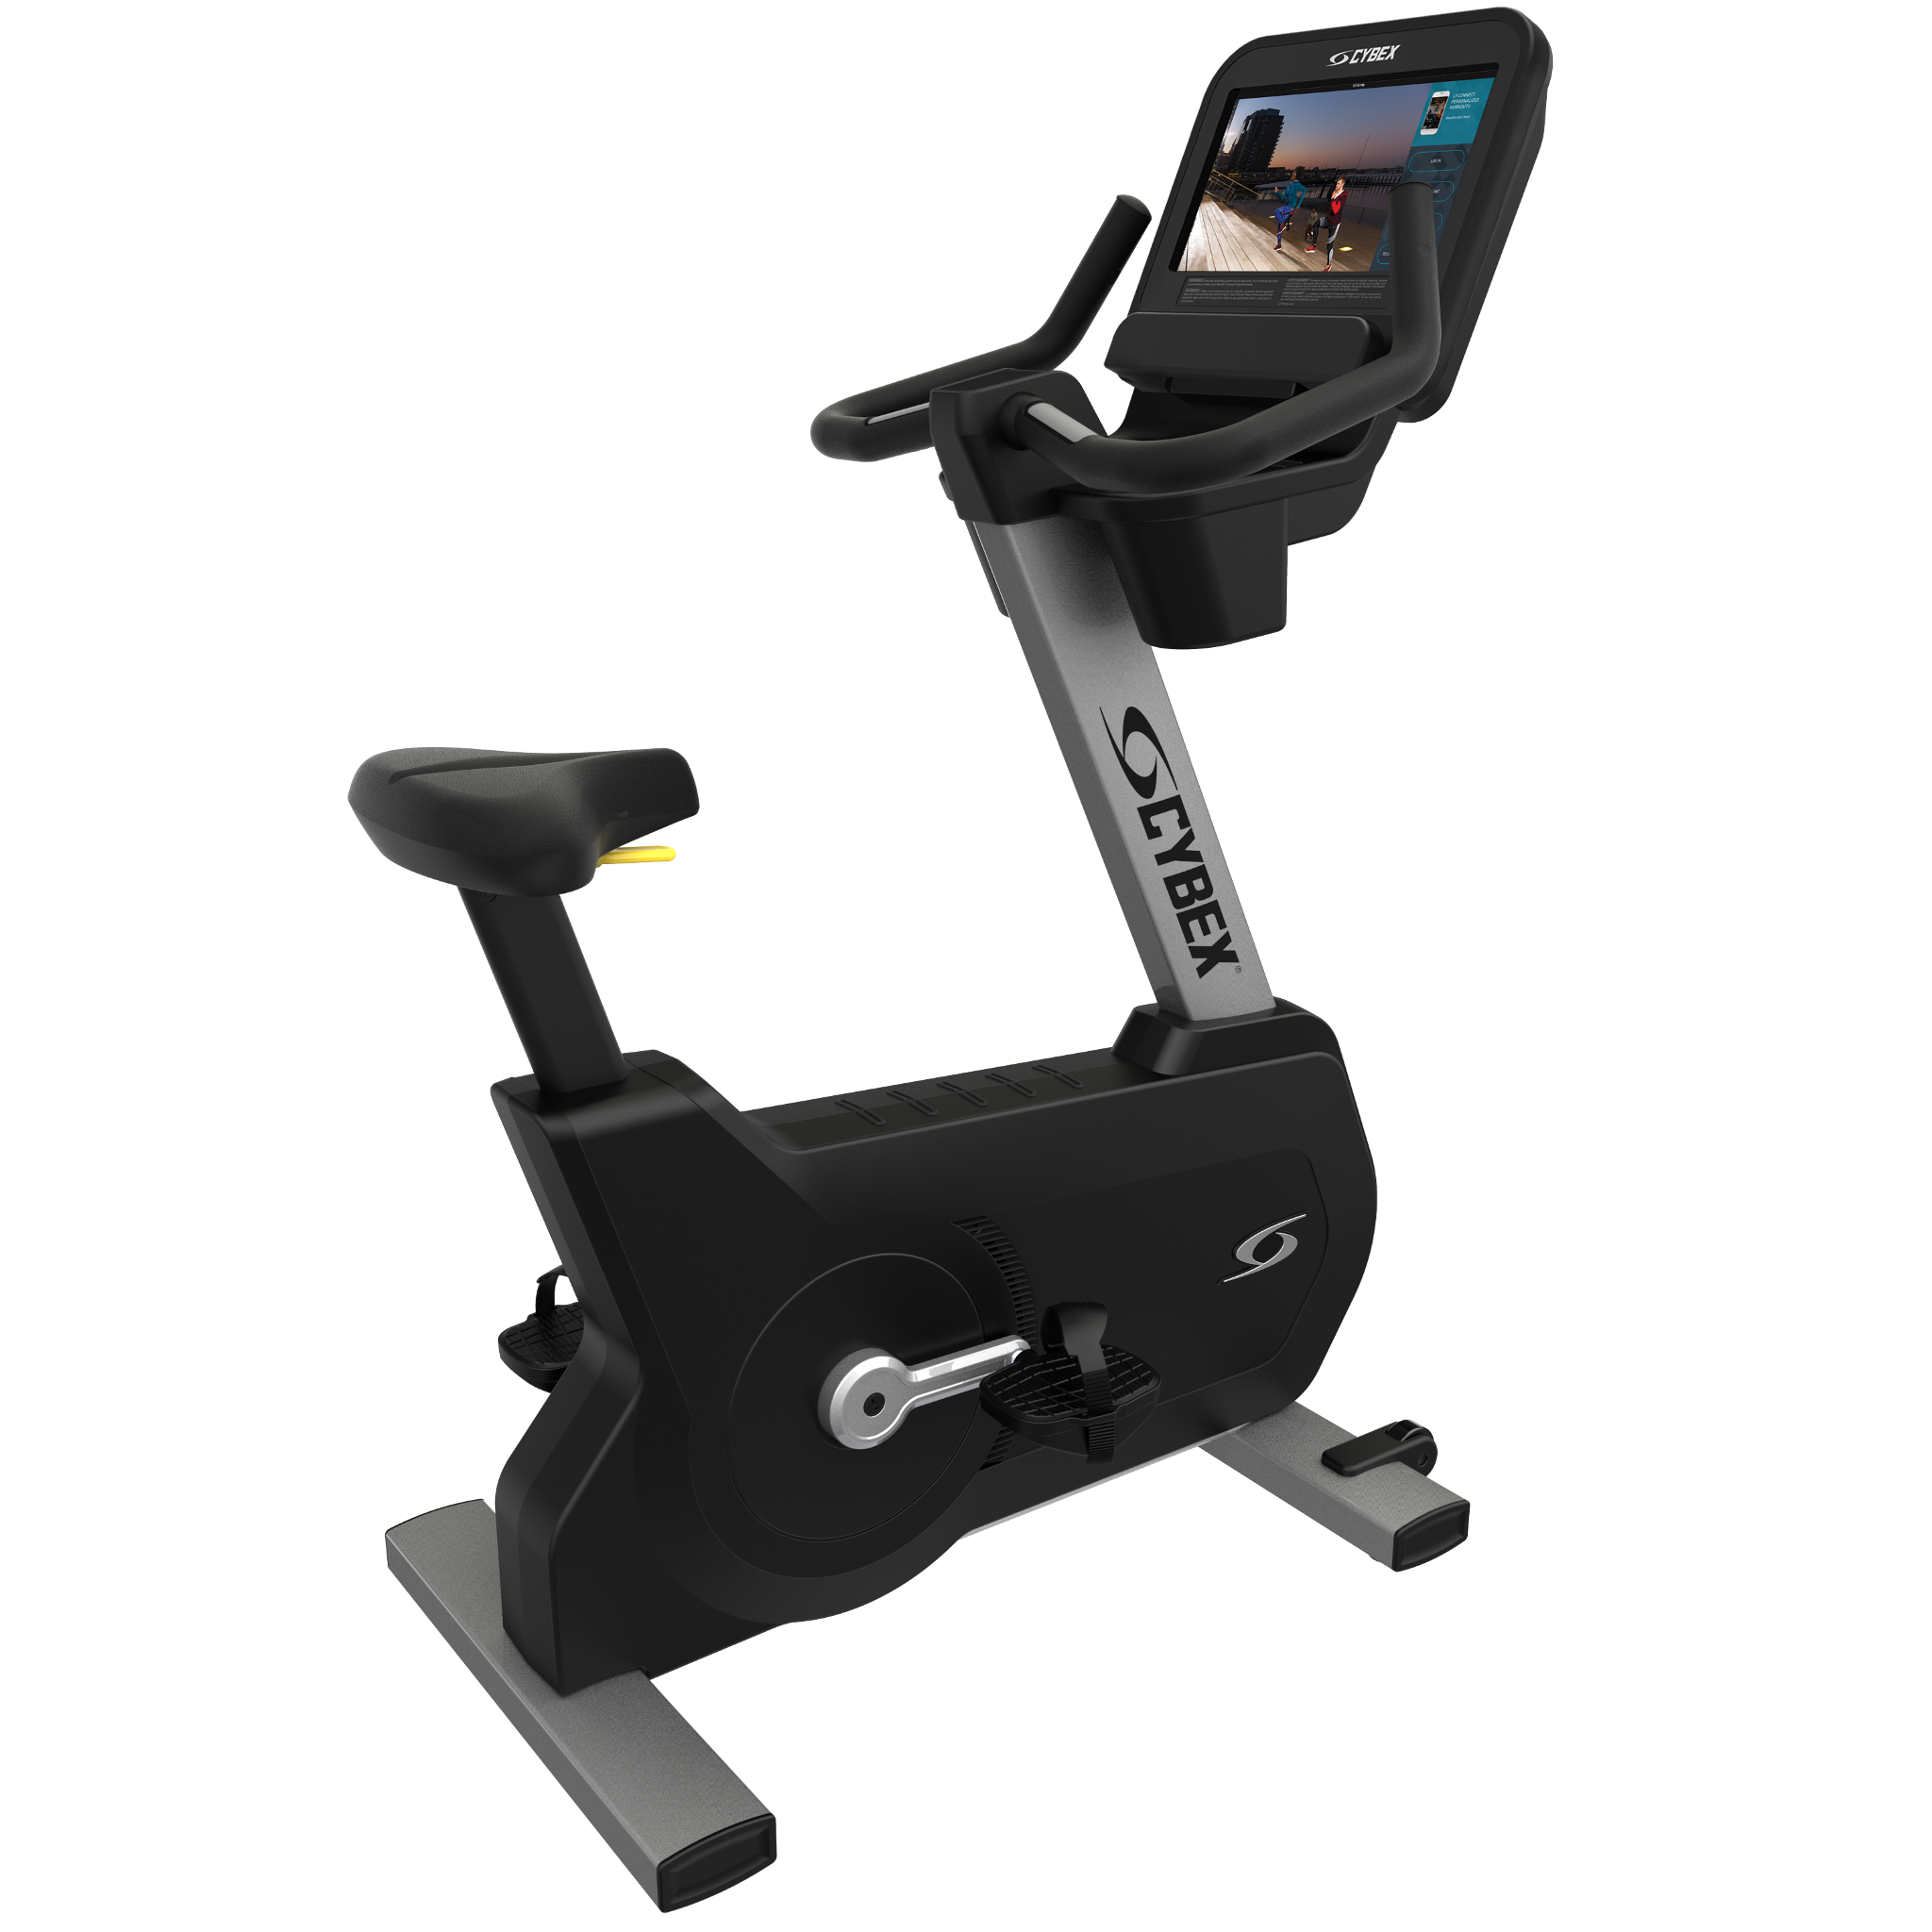 R Series Upright Bike